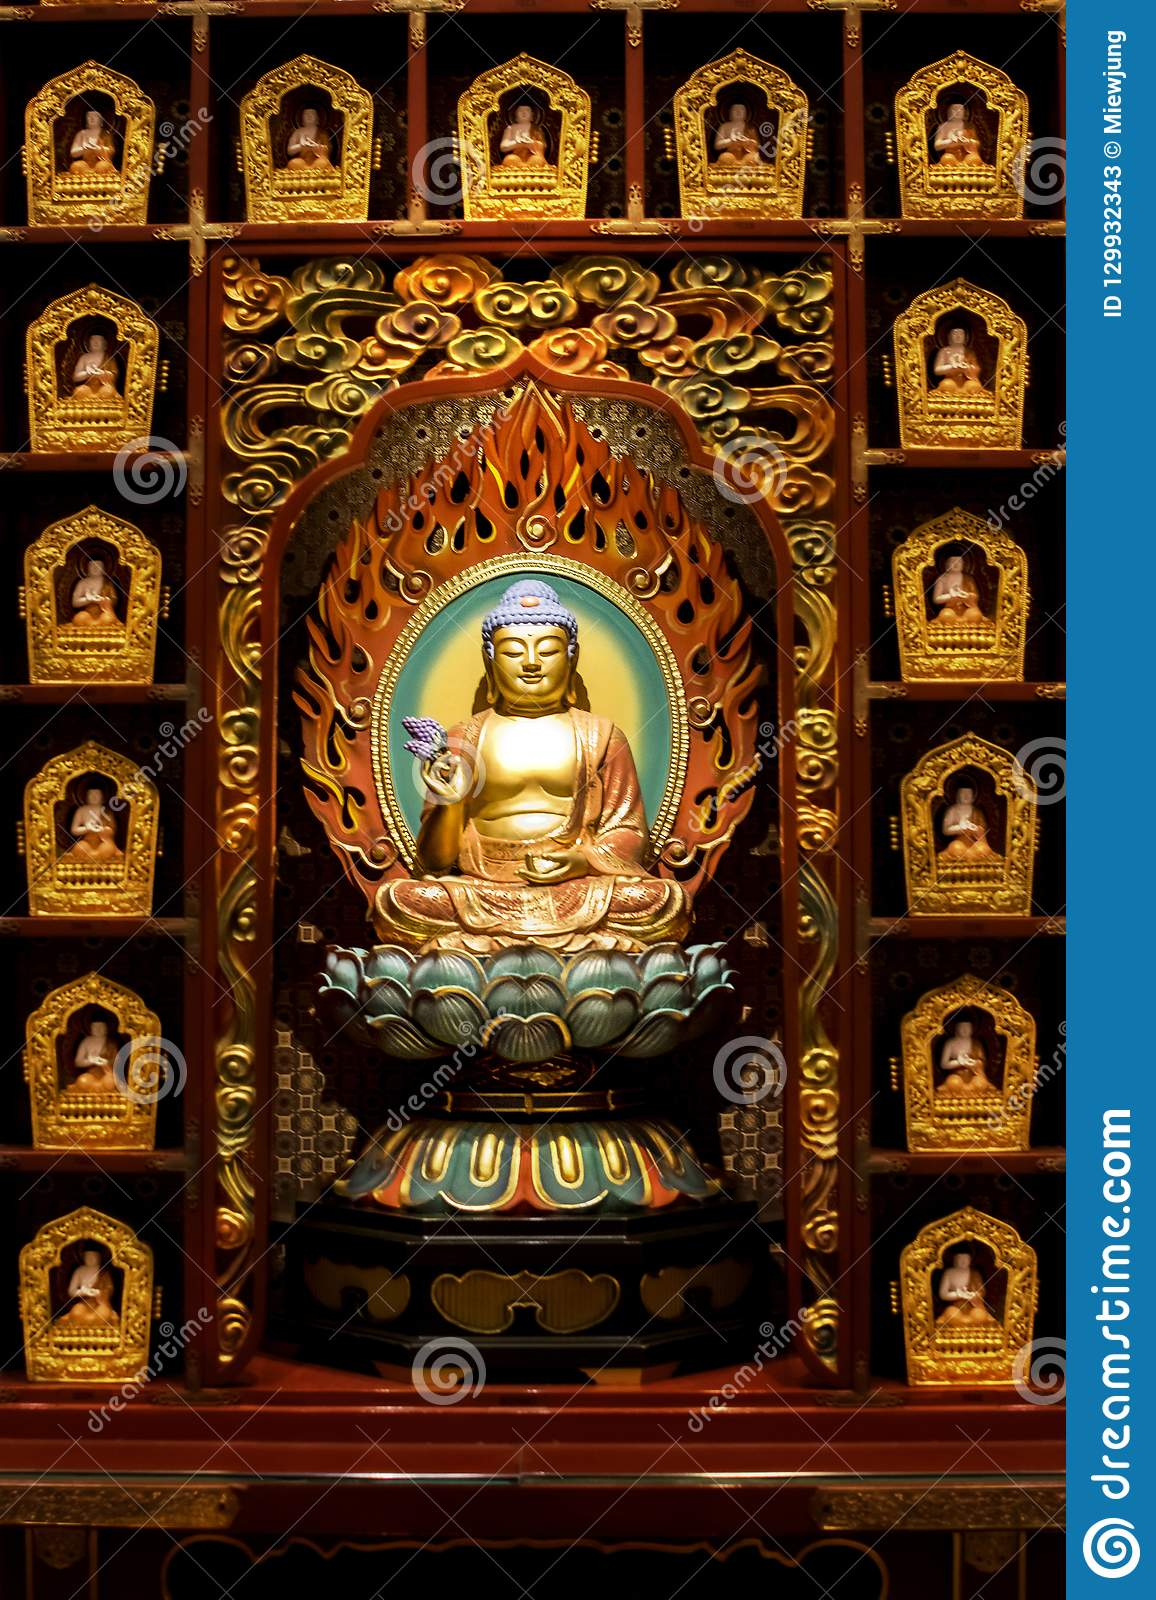 The statue of Buddha in Chinese Buddha Tooth Relic Temple, Singapore.